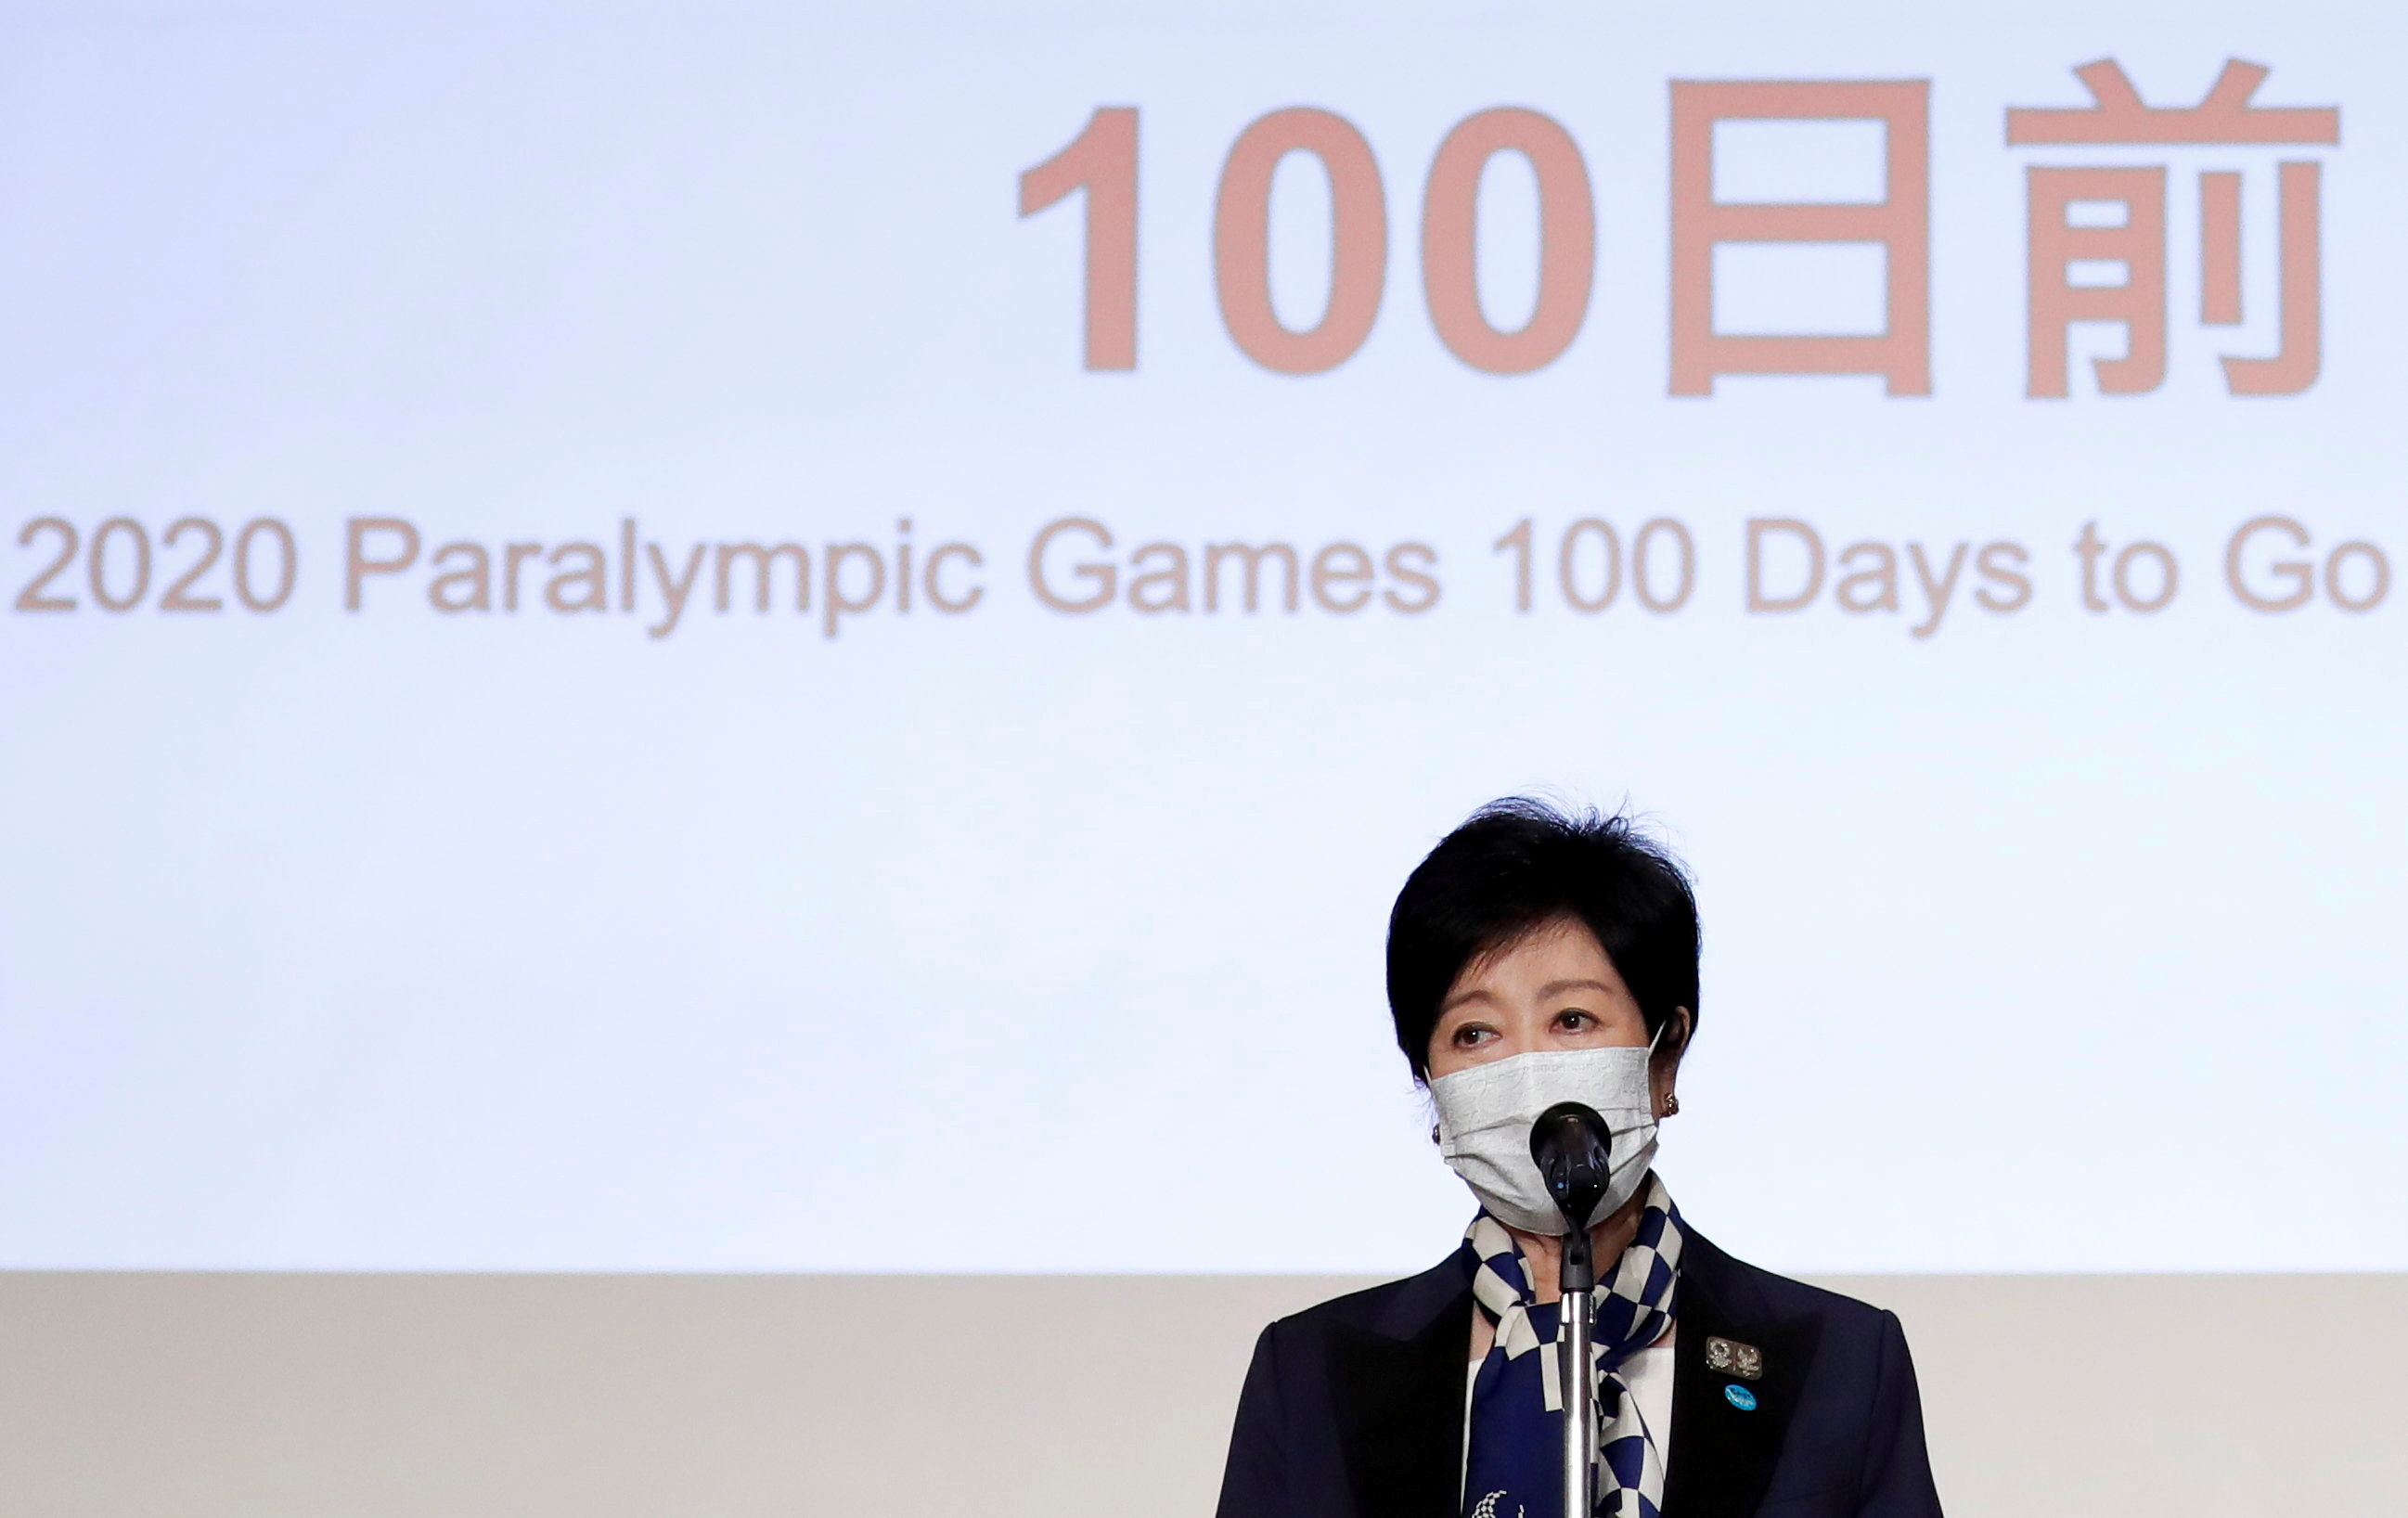 Tokyo Governor Yuriko Koike delivers a speech during  a ceremony to mark 100 days until the opening of the Tokyo 2020 Paralympic Games that have been postponed to 2021 due to the coronavirus disease (COVID-19) outbreak, at Tokyo Metropolitan Government building in Tokyo, Japan May 16, 2021. REUTERS/Issei Kato/Pool